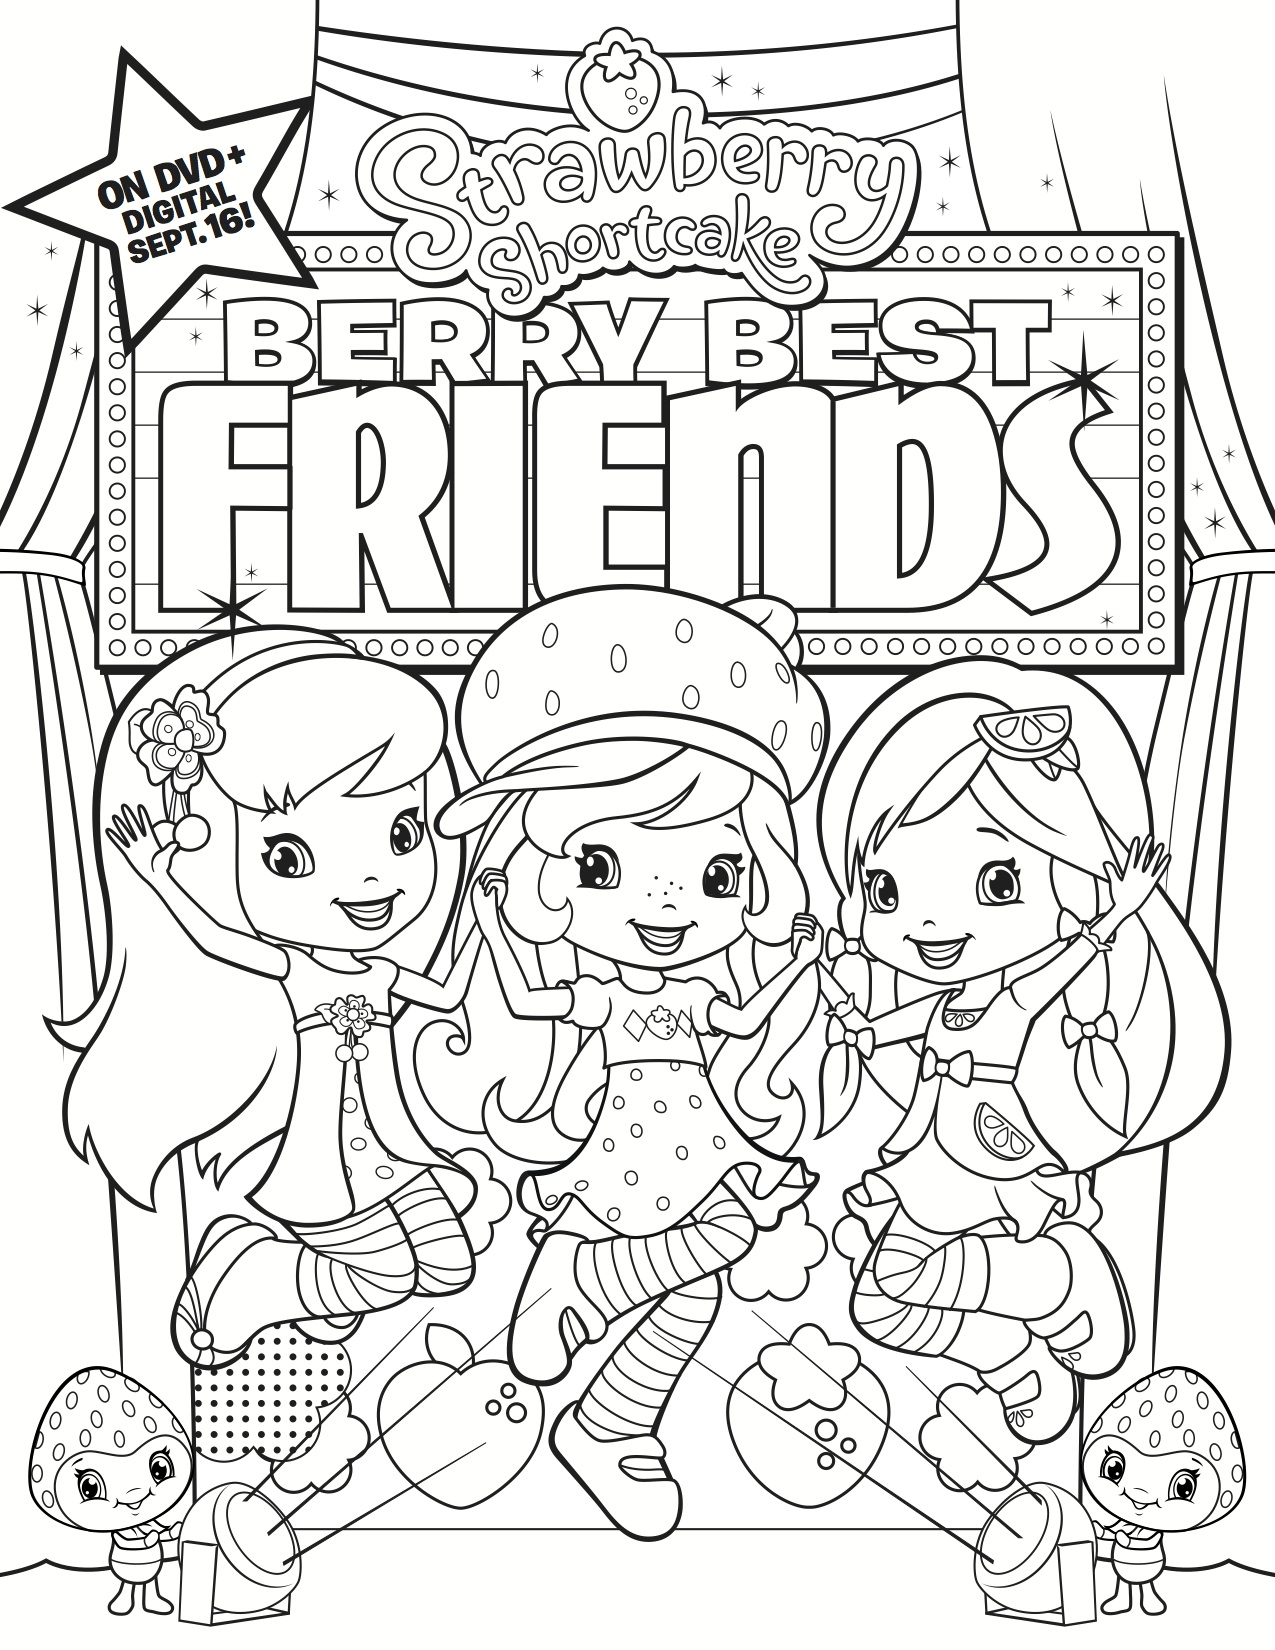 best friend coloring pages - Best Color Sheets